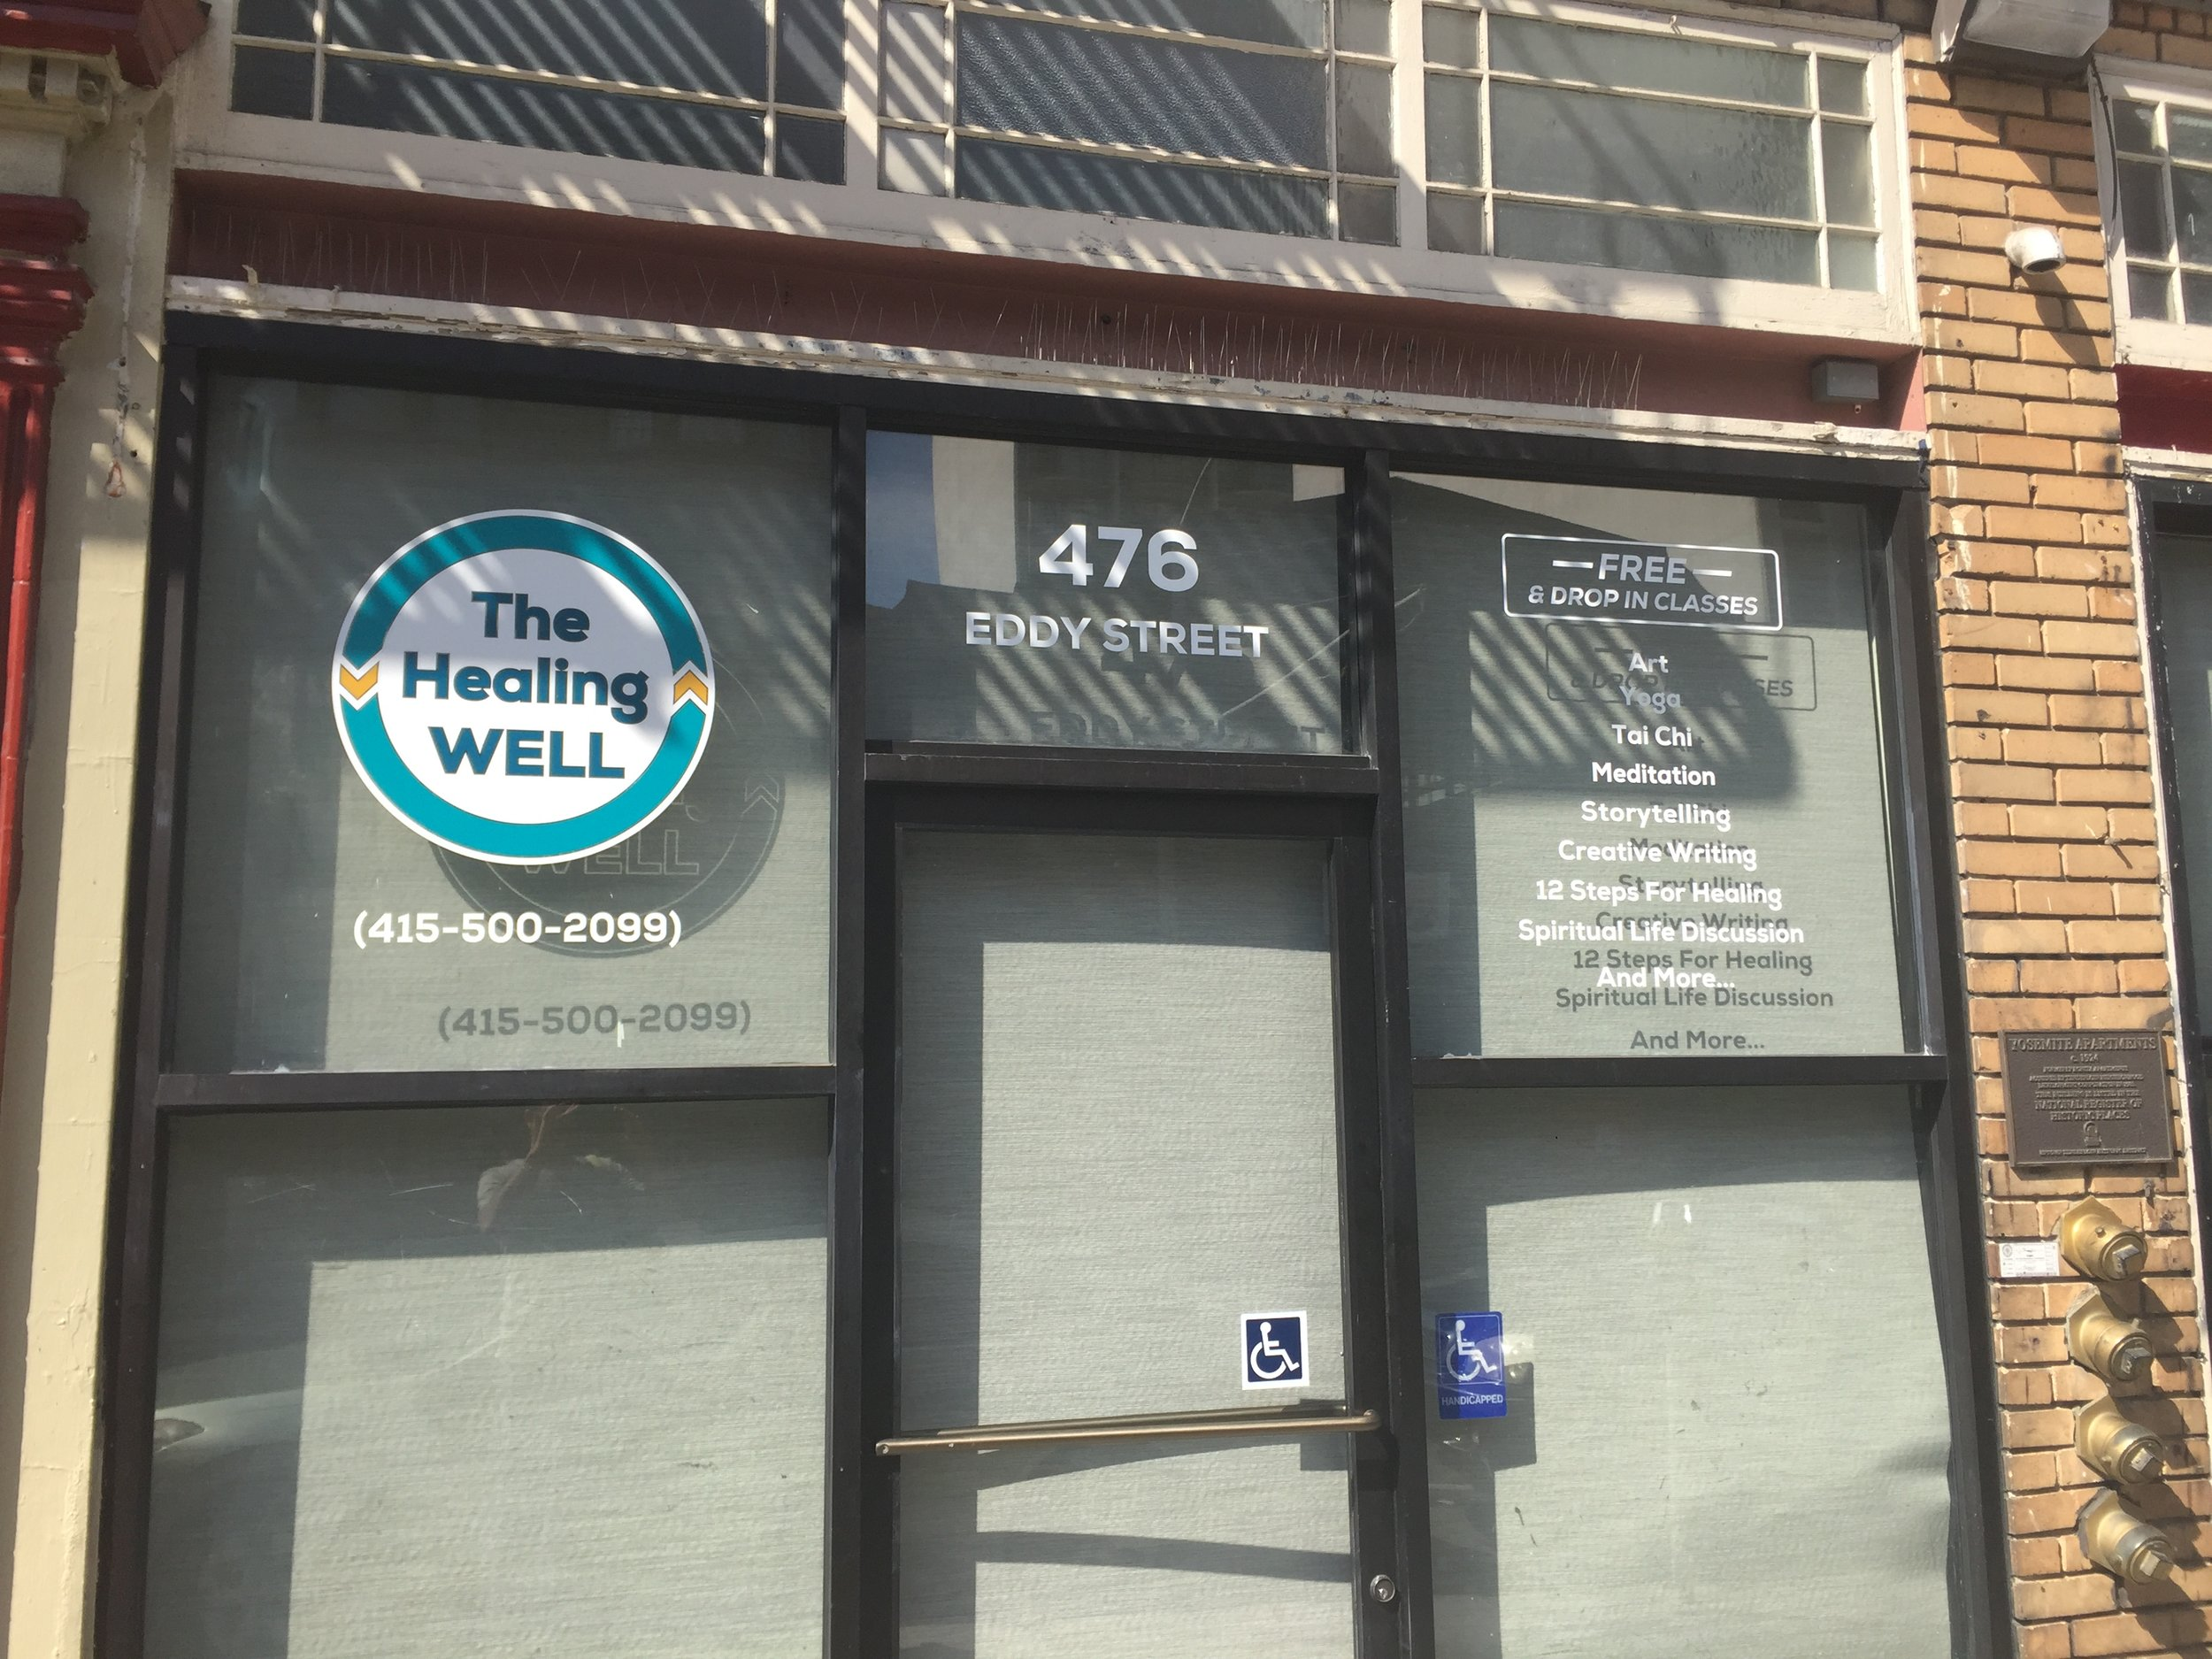 The Healing WELL new location at 476 Eddy (at Hyde).